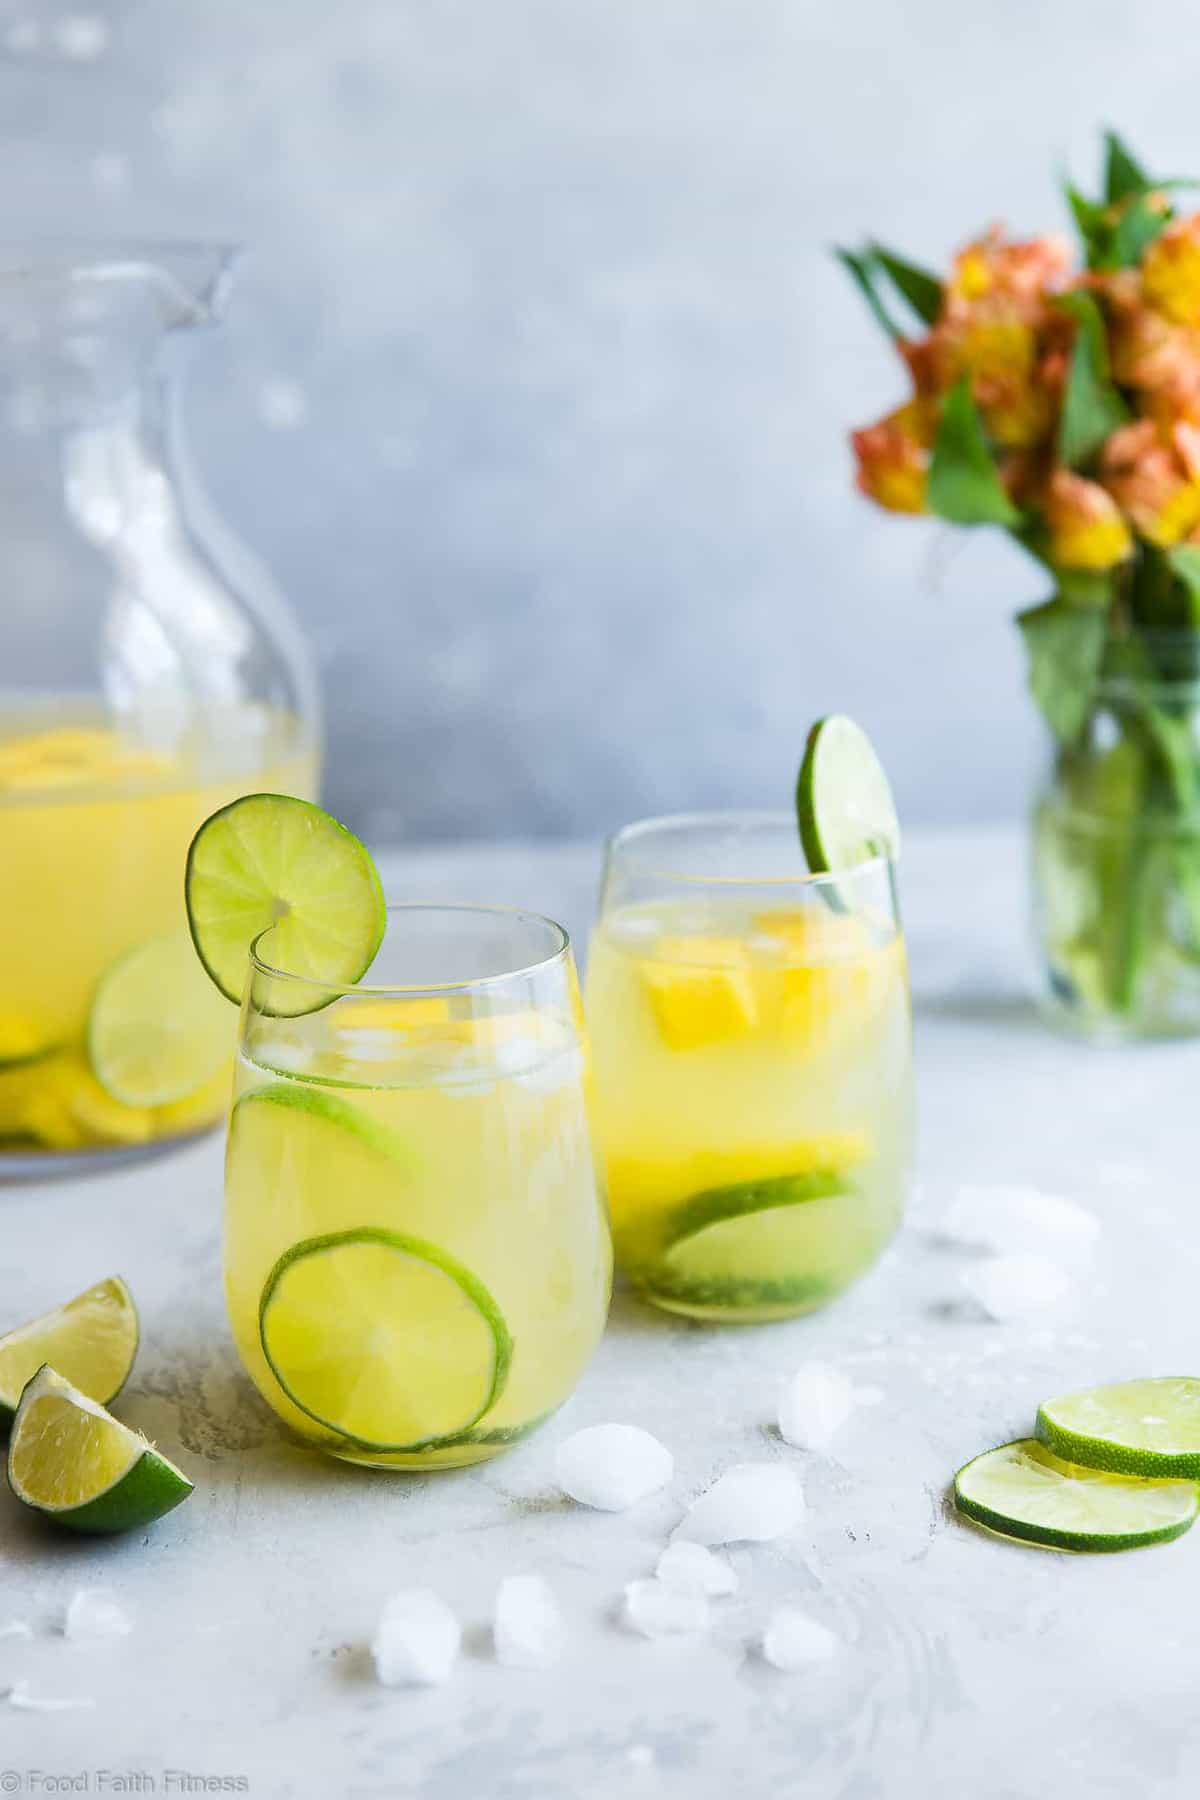 Tropical White Moscato Sangria - This easy, island style White Moscato Sangria recipe is a SUPER easy cocktail, perfect for Summer parties! Made with better for you ingredients and SO tasty! | #Foodfaithfitness | #Sangria #Glutenfree #Healthy #DairyFree #Cocktail